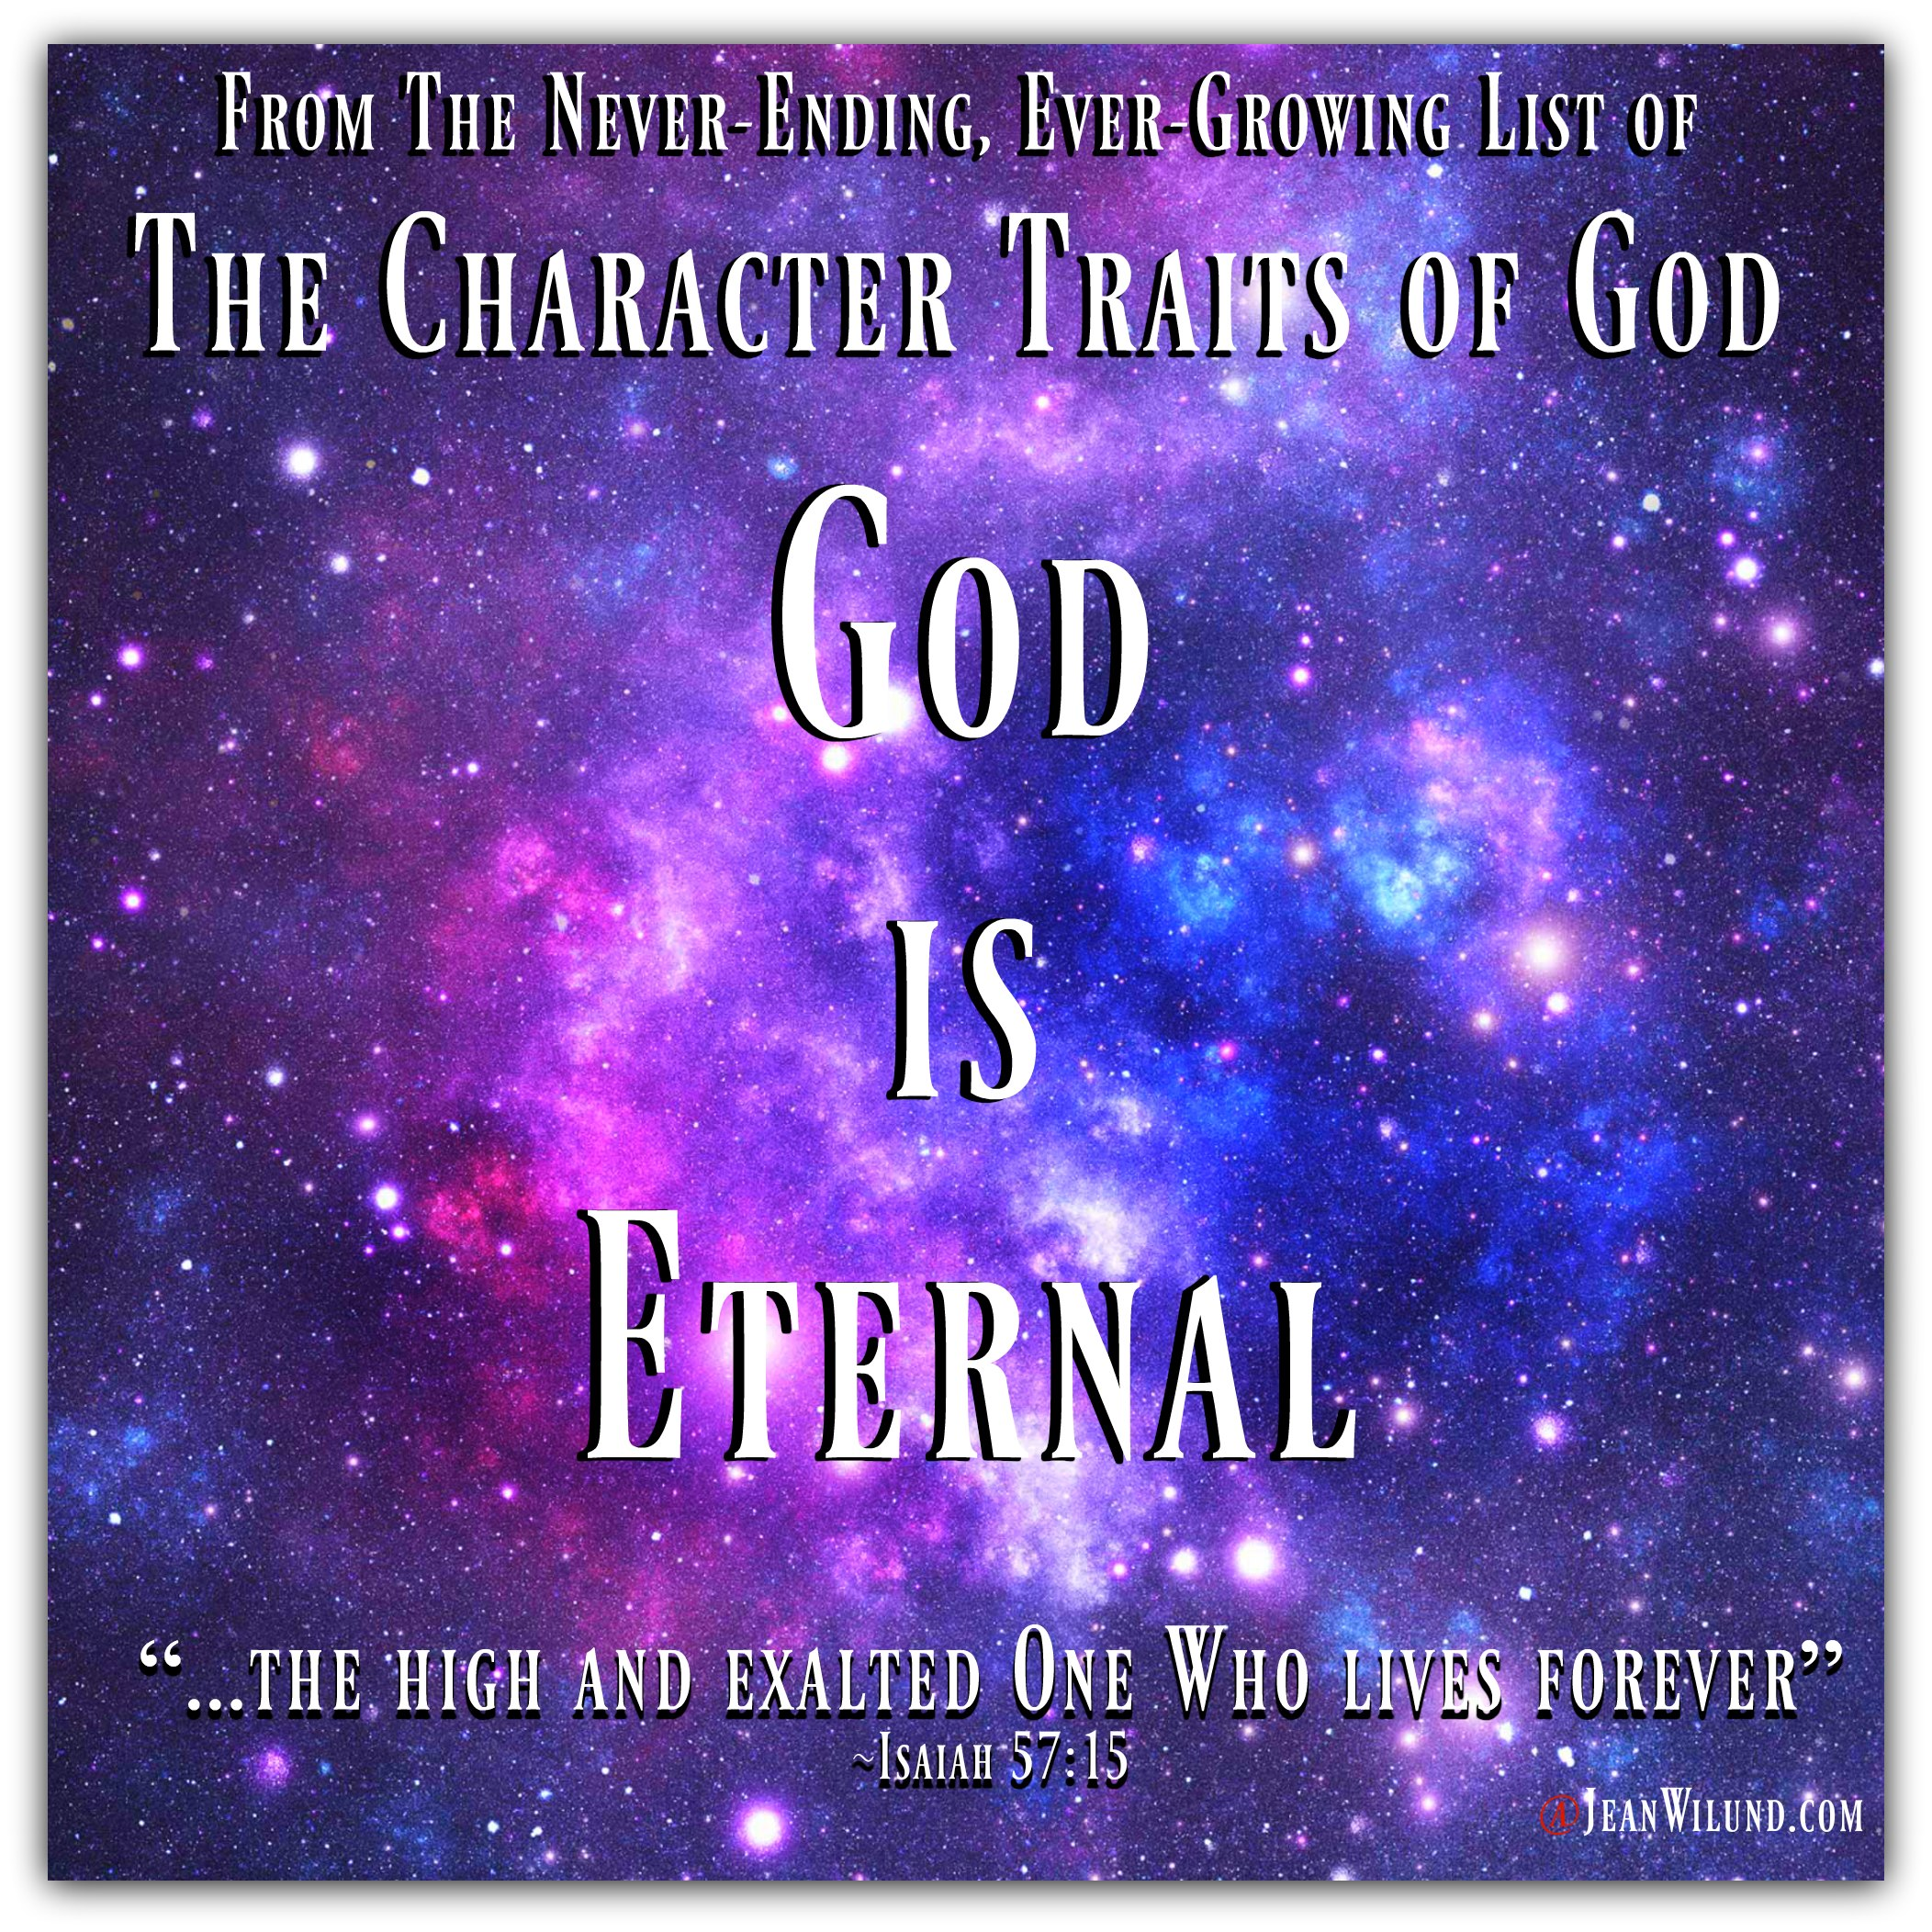 From the Never-ending, Ever-growing List of the Character Traits of God. God is Eternal (www.JeanWilund.com)